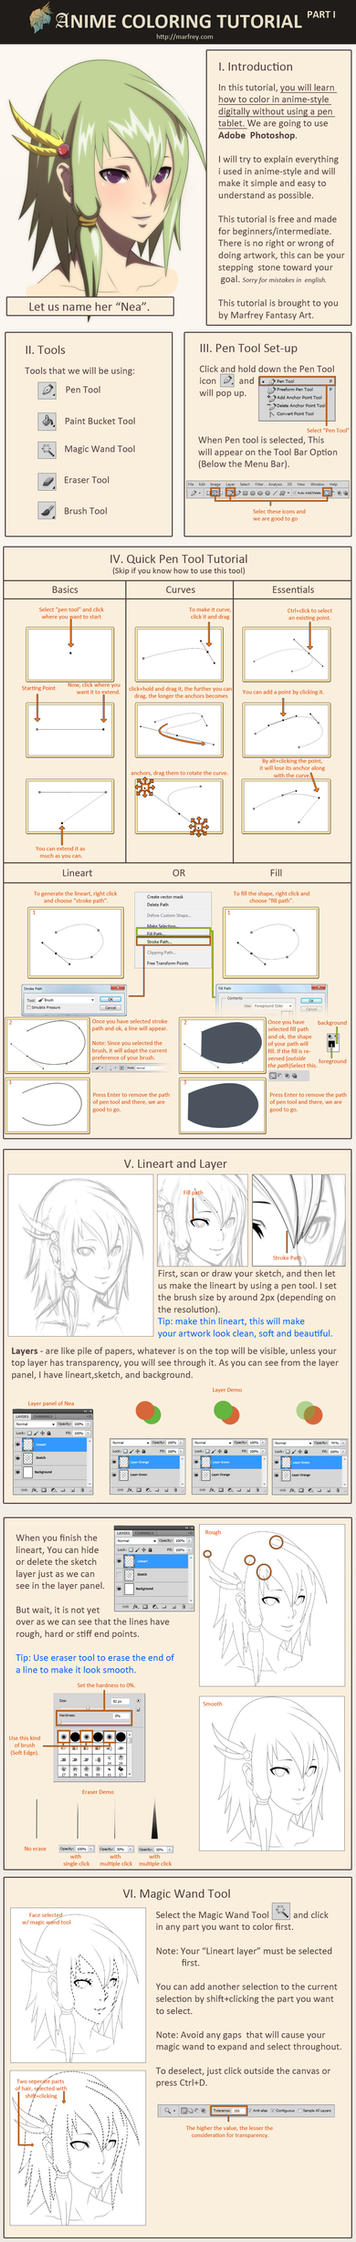 Anime coloring tutorial part 1 by marfrey on deviantart anime coloring tutorial part 1 by marfrey baditri Choice Image